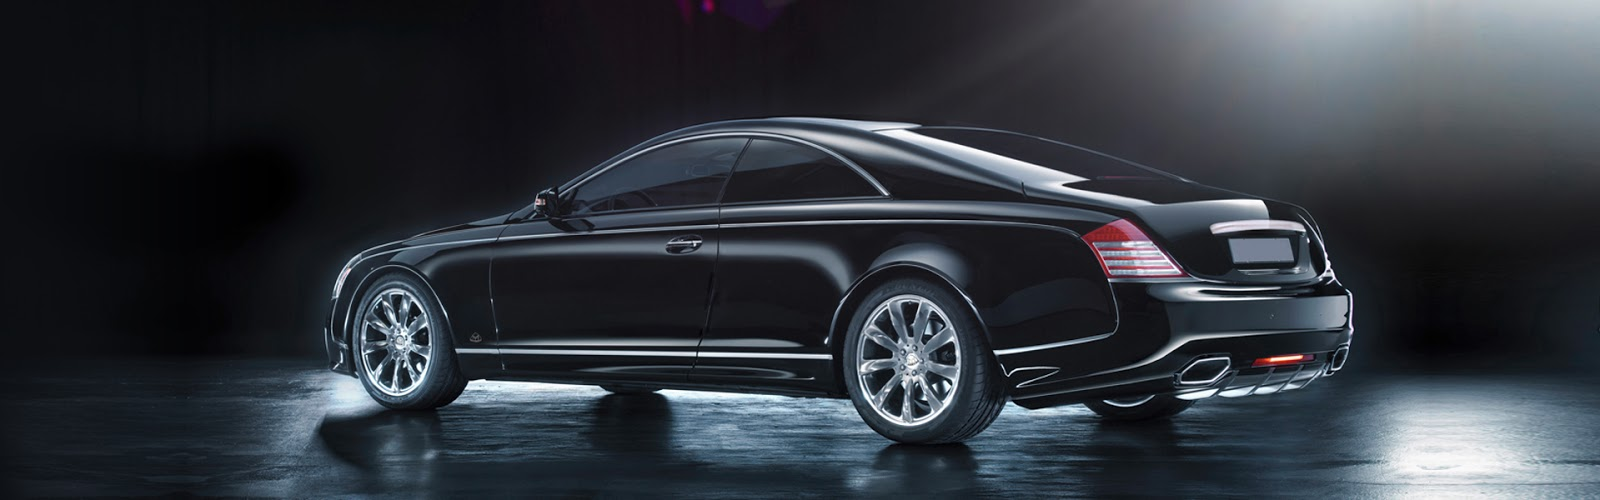 2017 Maybach 57 photo - 1